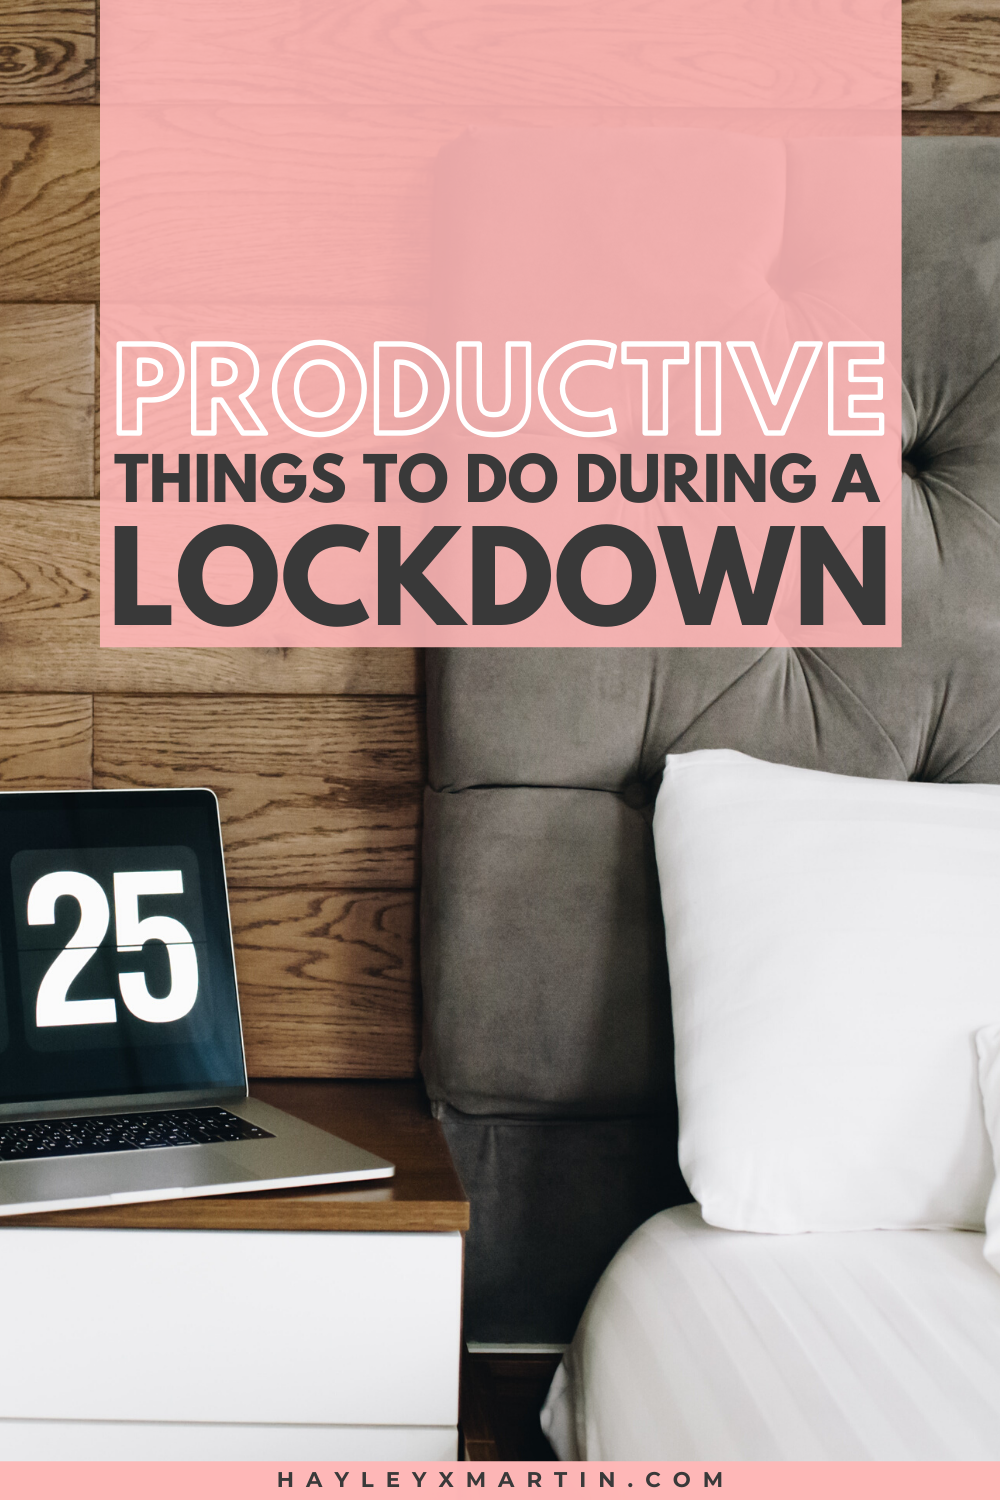 PRODUCTIVE THINGS TO DO DURING A LOCKDOWN | HAYLEYXMARTIN